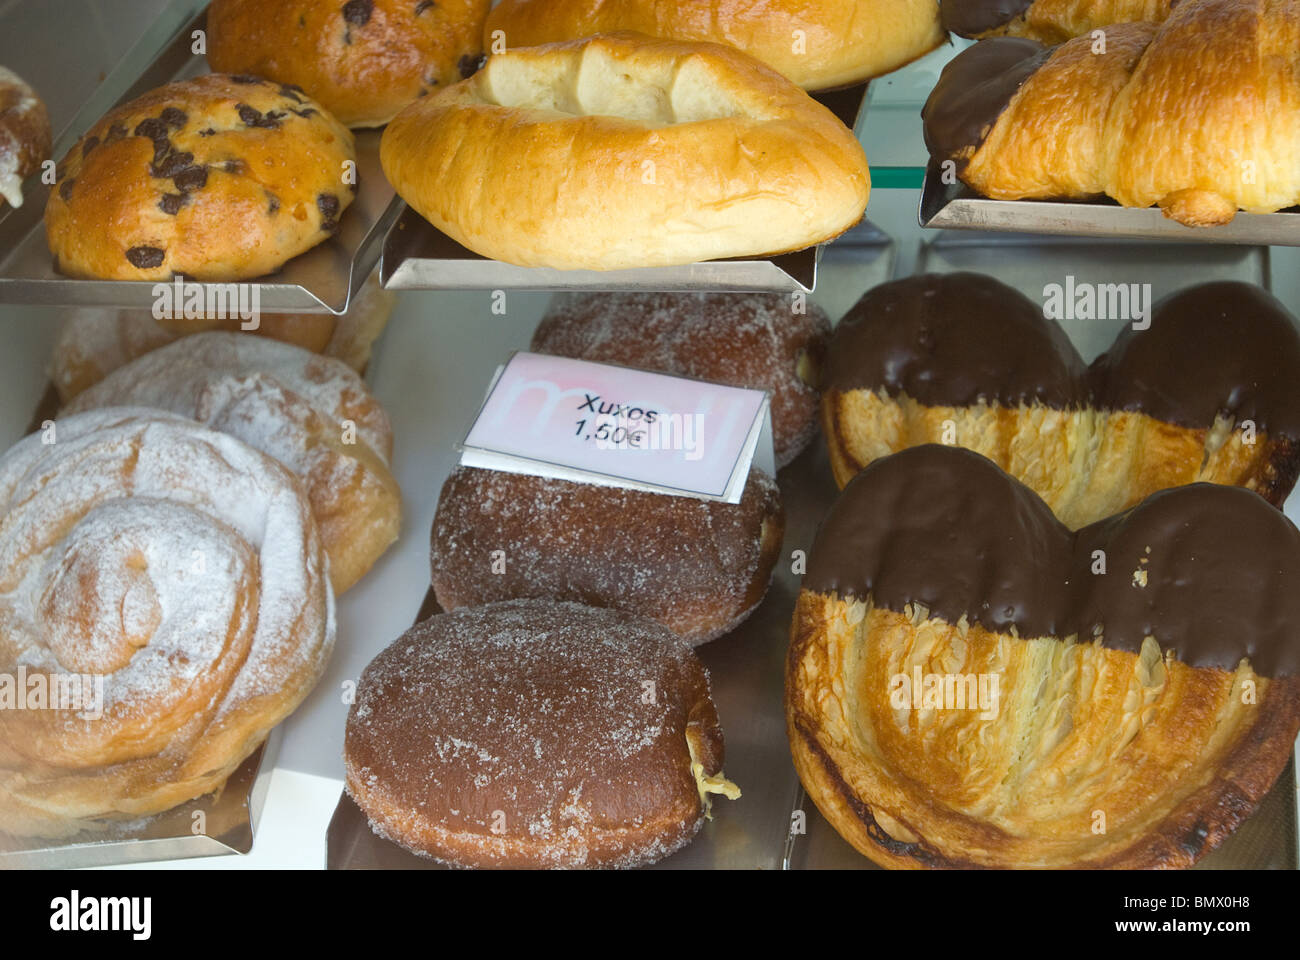 Cakes and pastries, Menorca, Balearics, Spain - Stock Image